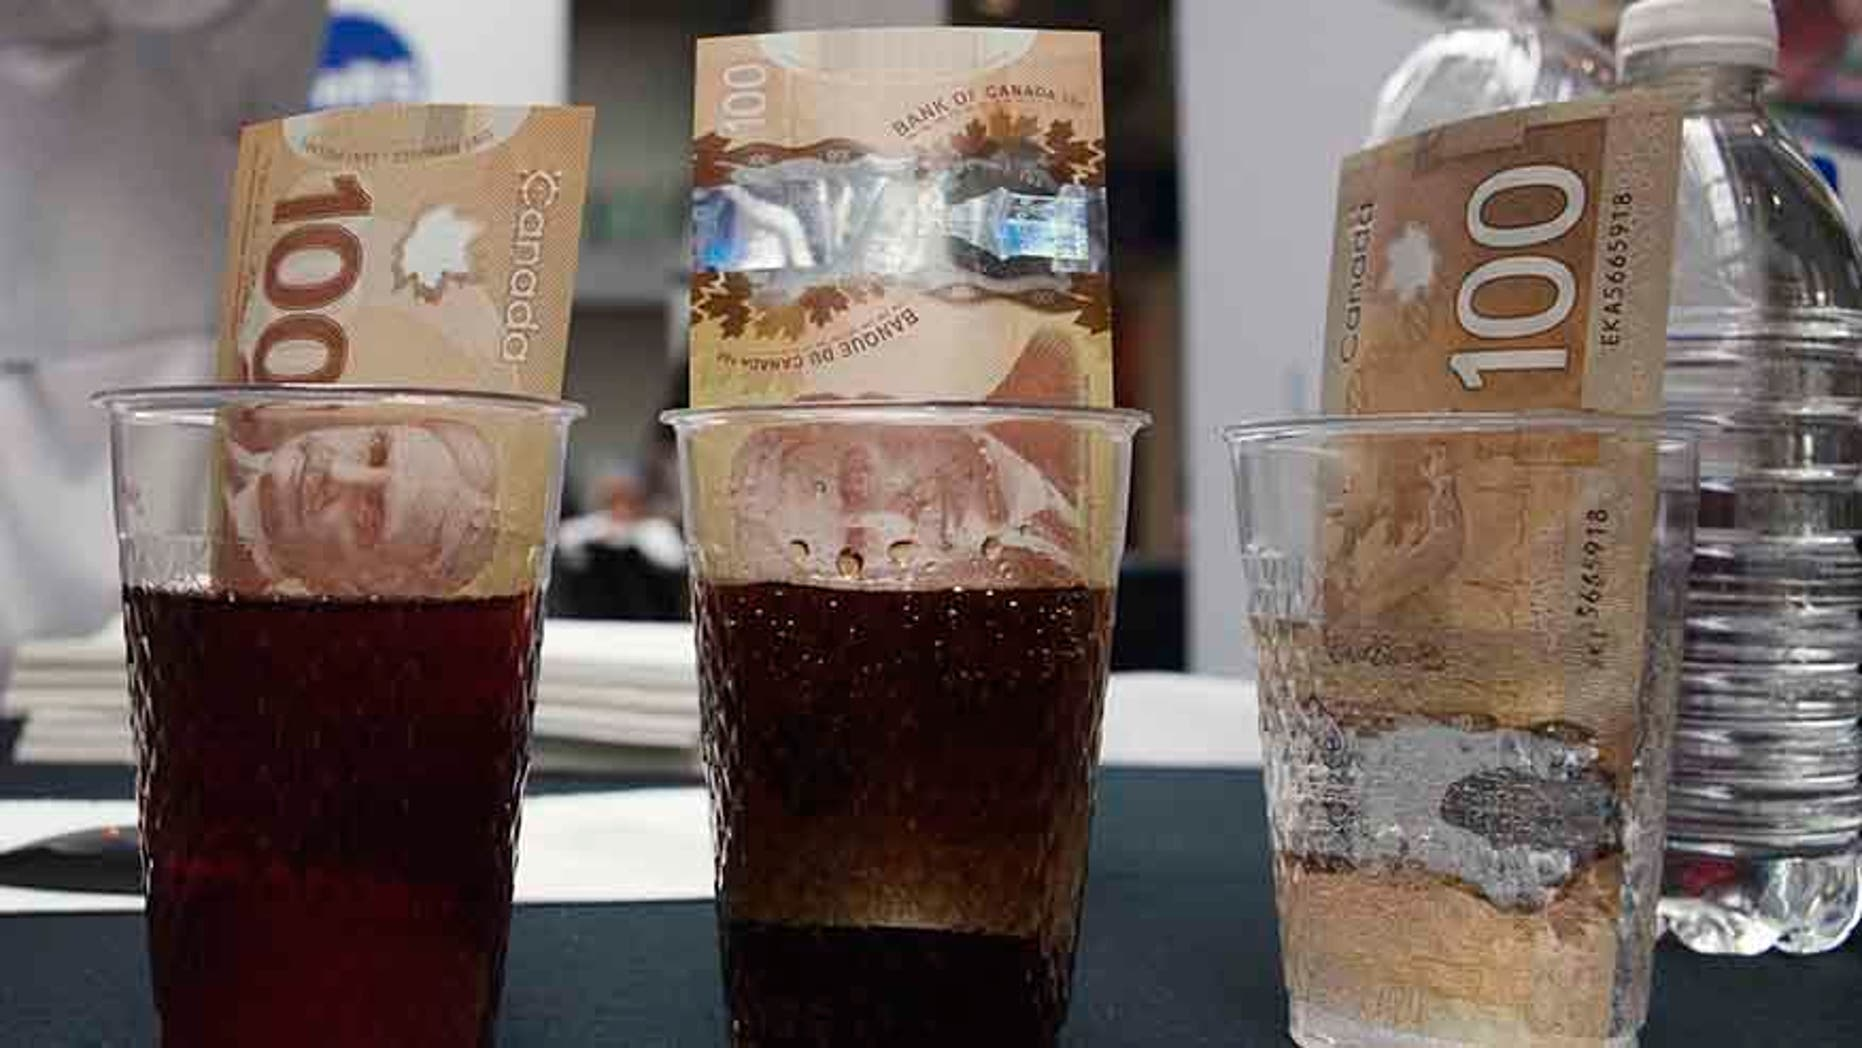 Canadian 100 dollar bills made of polymer are placed in glasses of juice, cola and water.